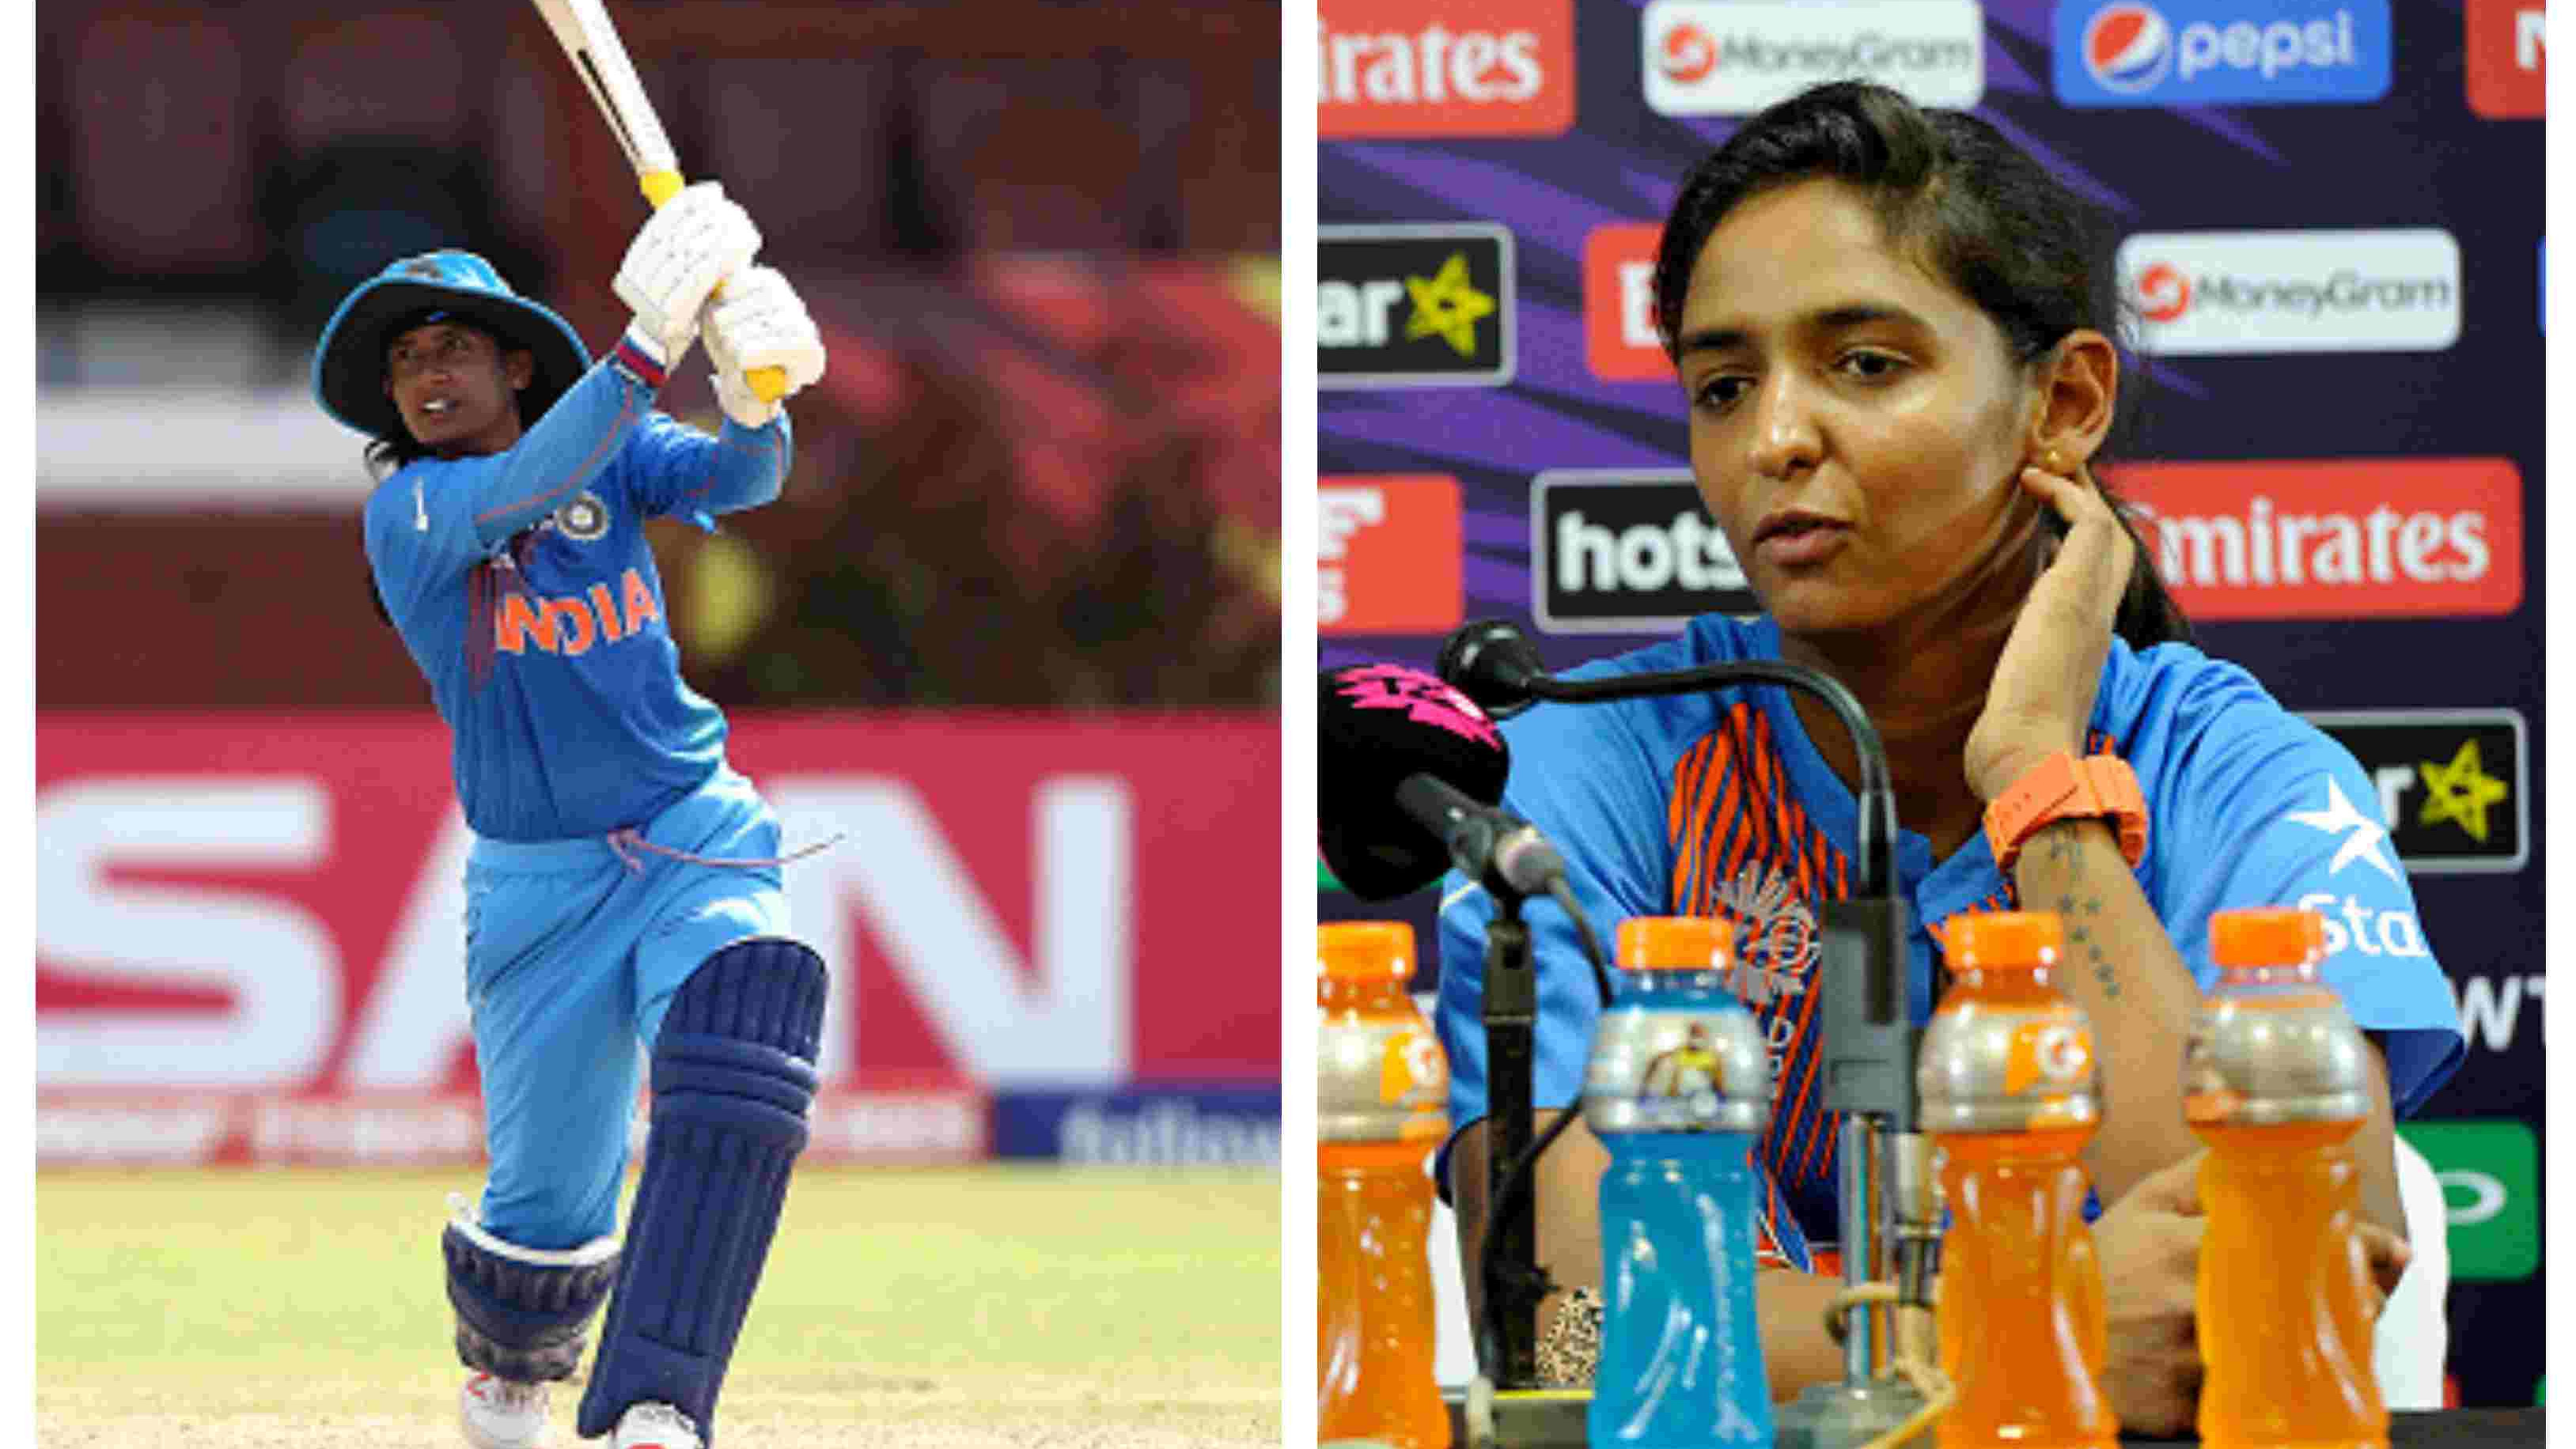 Women's World T20: Harmanpreet Kaur opens up about Mithali Raj's omission from WWT20 semi-final against England